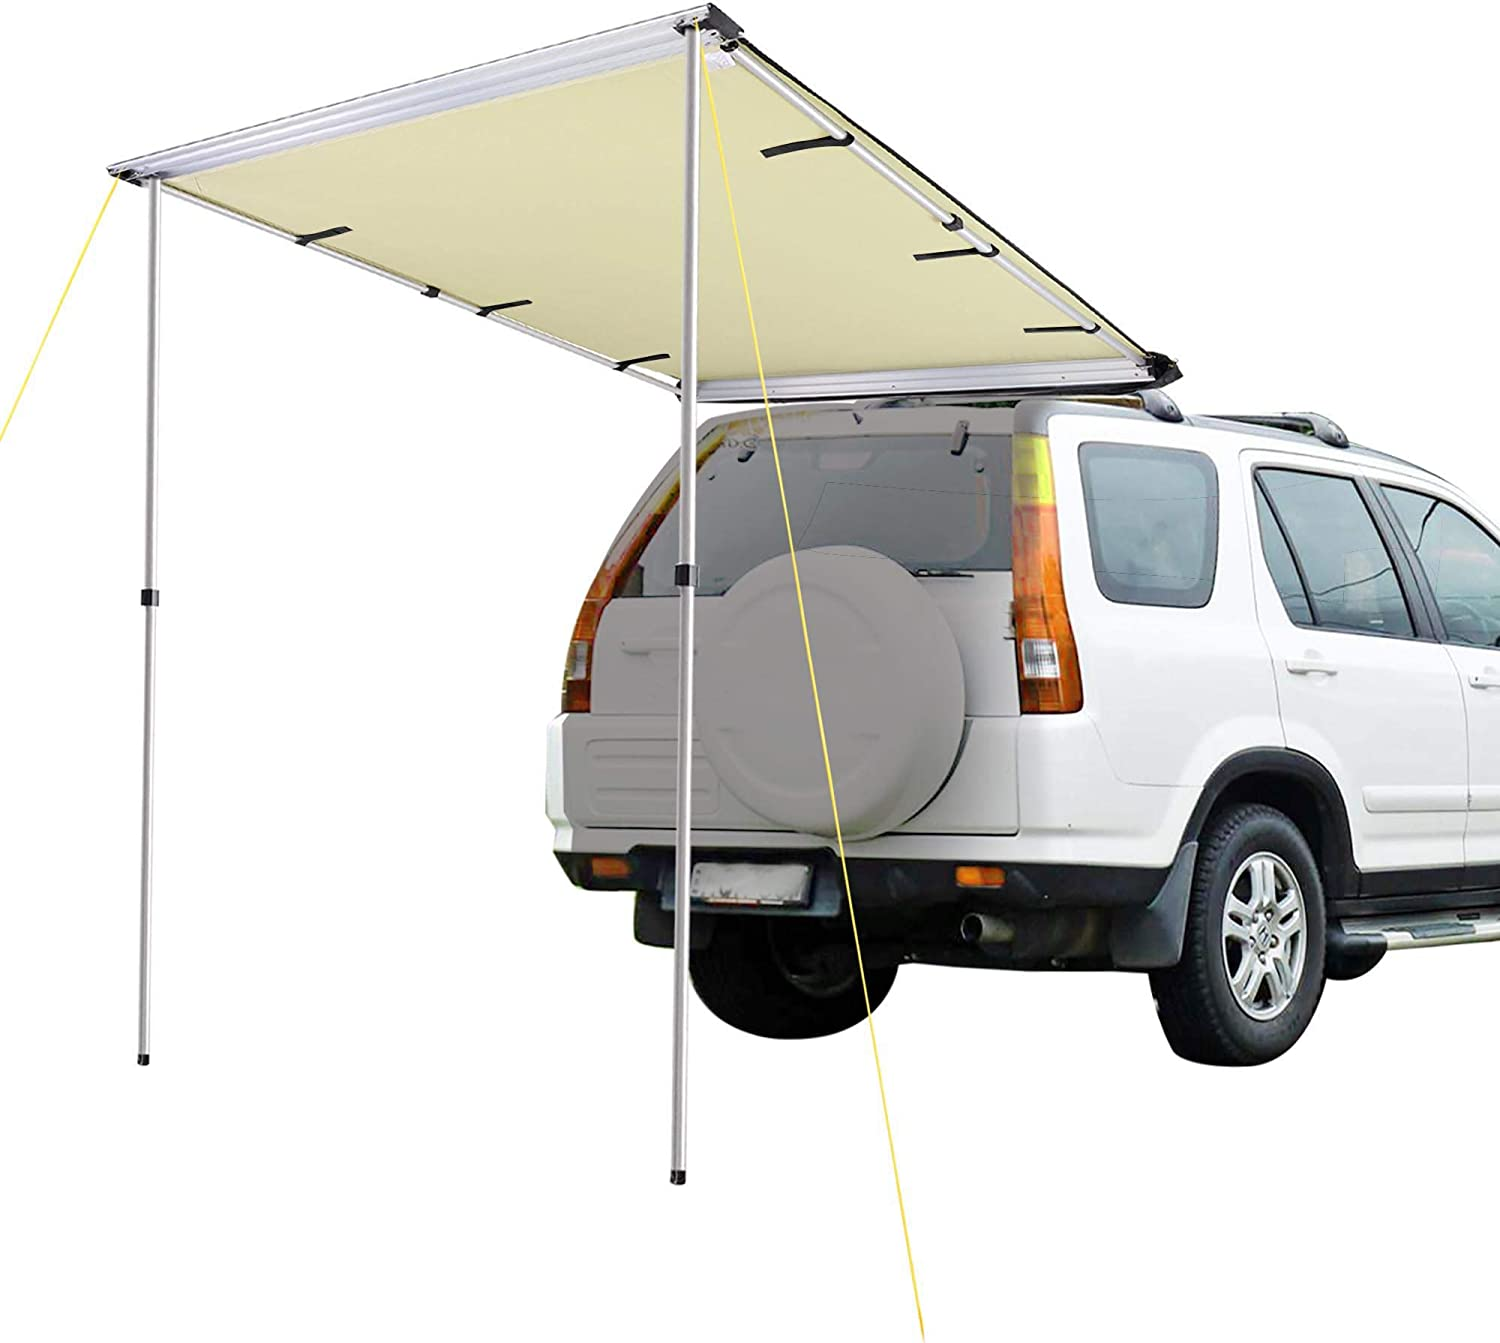 7.6x8.2/' Car Side Awning Rooftop Tent Sun Shade SUV Outdoor Camping Travel Beige